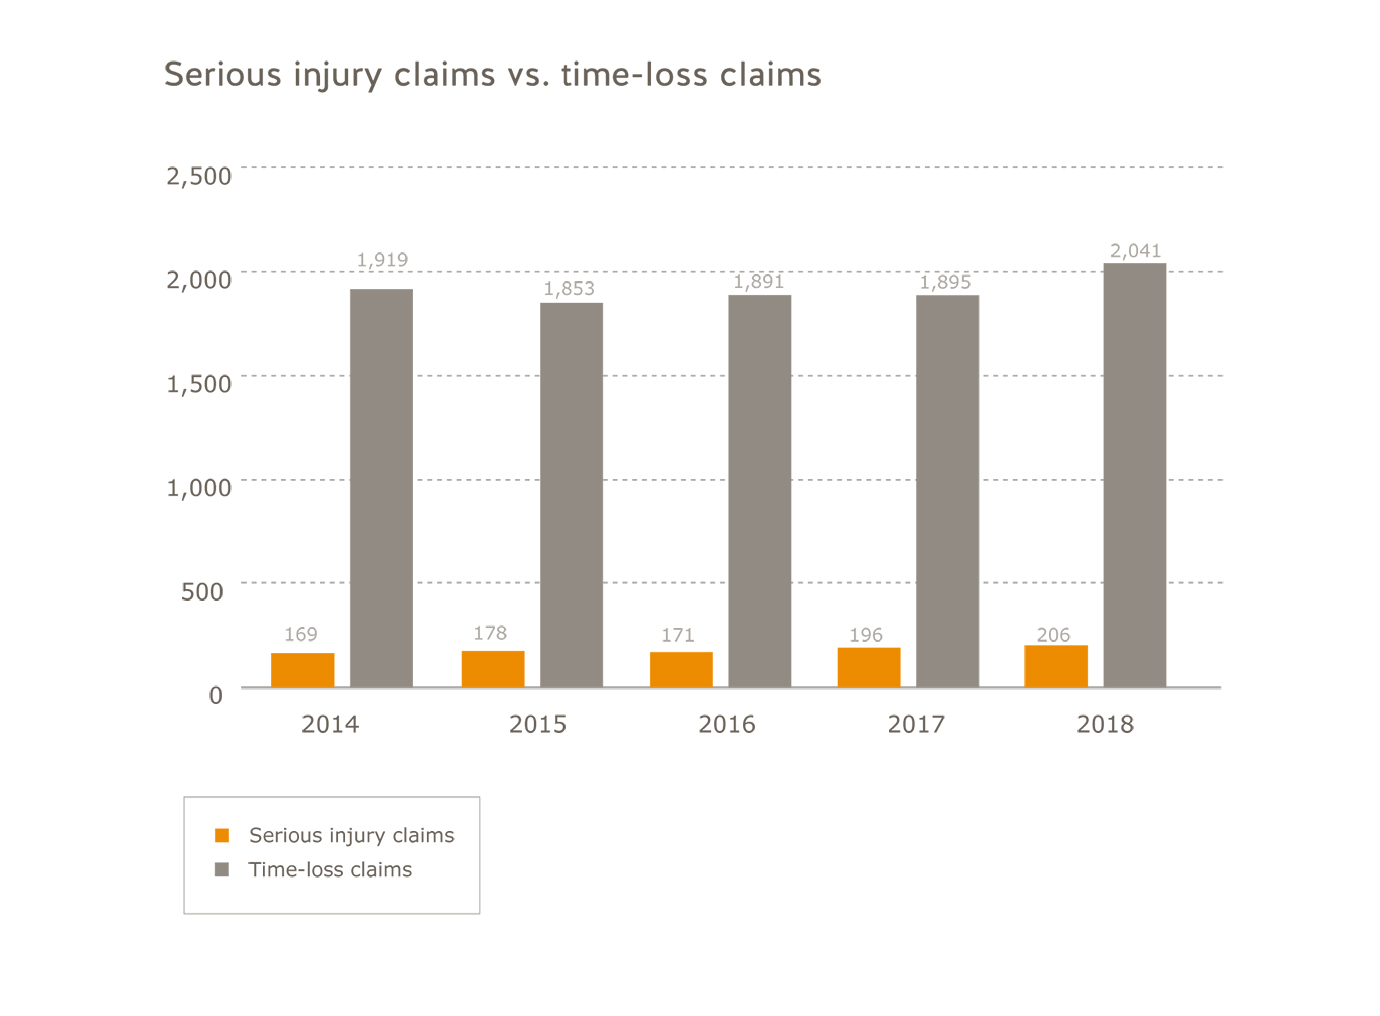 Municipalities industry serious injury claims vs. time-loss claims for 2014 to 2018. Serious injury claims: 2014=169; 2015=178; 2016=171; 2017=196; 2018=206. Time-loss claims: 2014=1,919; 2015=1,853, 2016=1,891, 2017=1,895, 2018=2,041